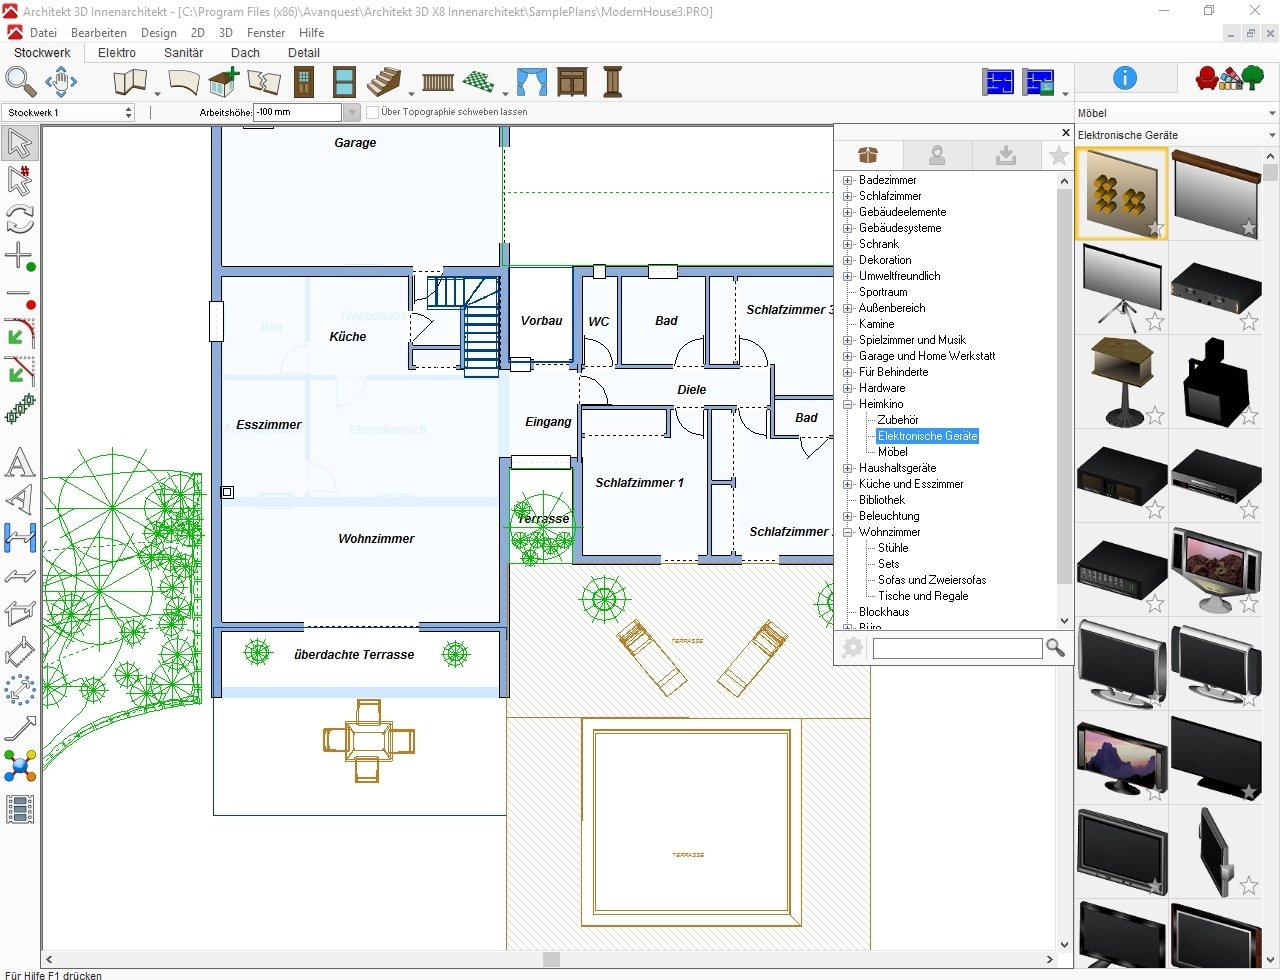 Avanquest Architekt 3D X8 Innenarchitekt - Software de ...